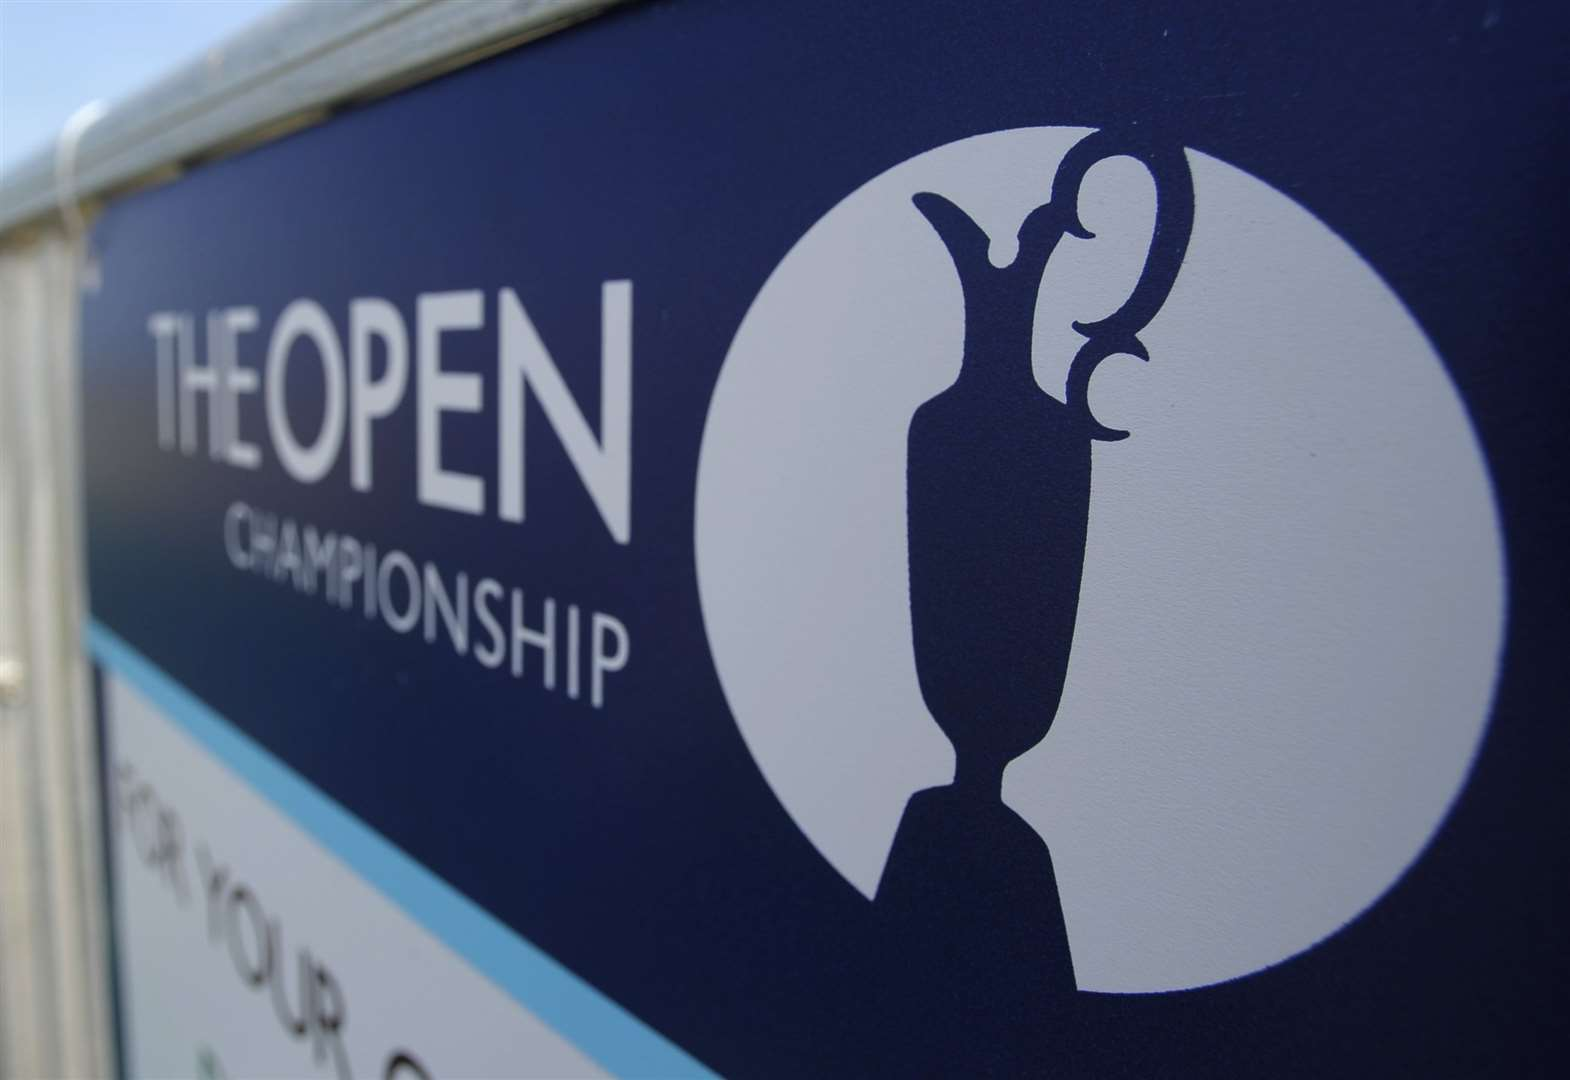 Record ticket sales for The Open 2020